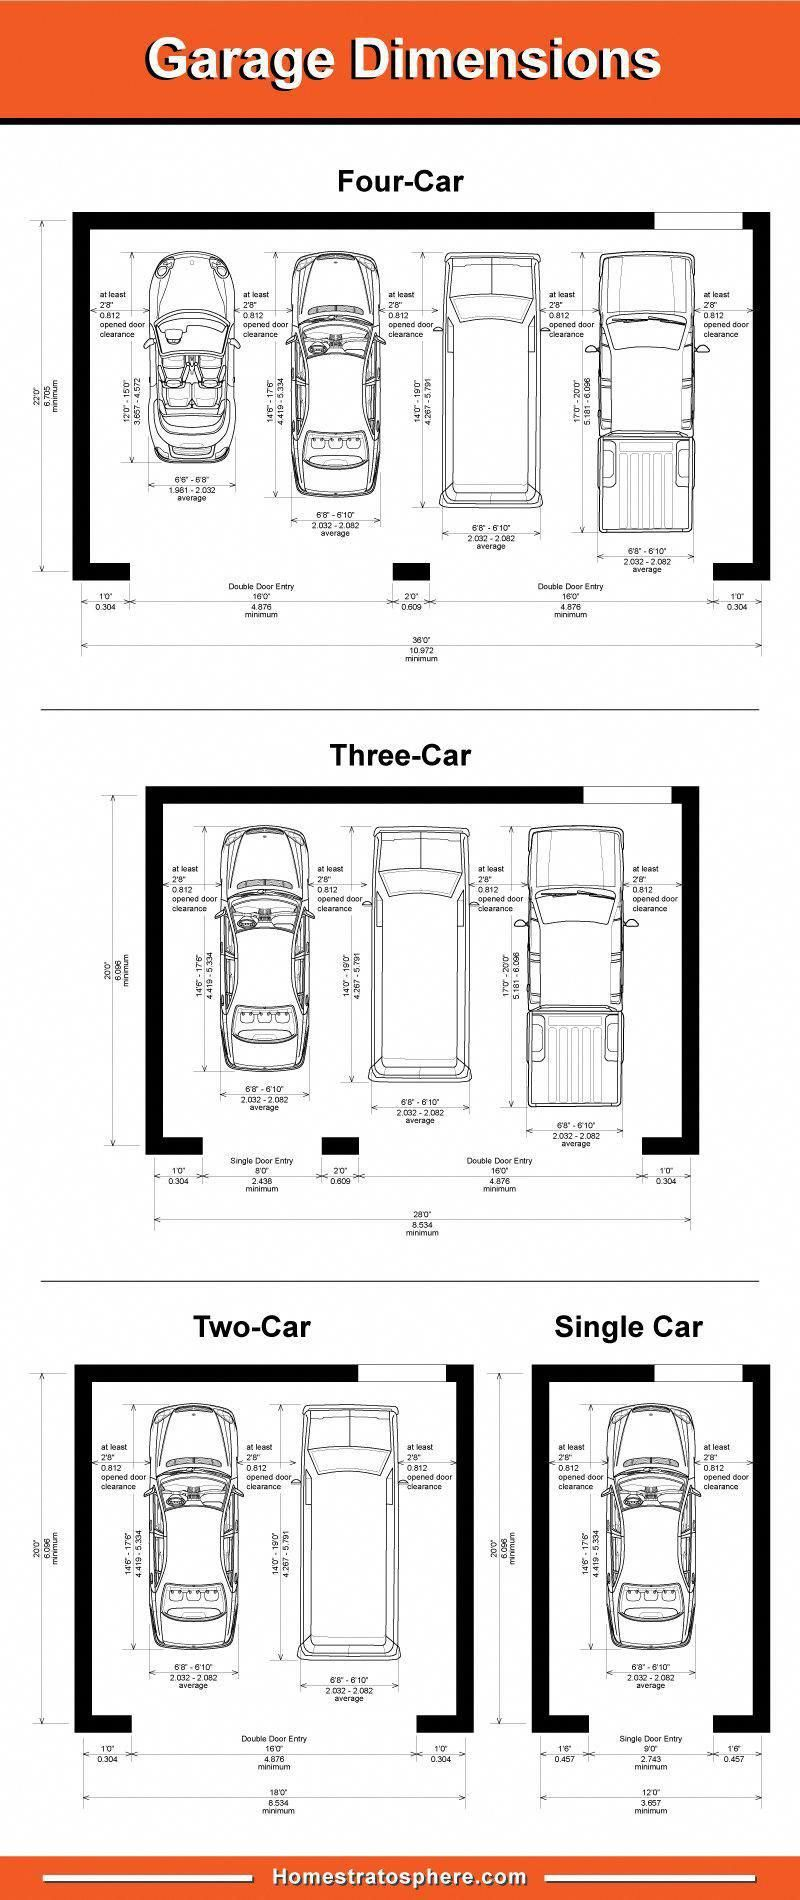 Delightful Garage Doors Decor Take A Peek At Our Content Article For Lots More Recommendations Garagedoorsd Garage Dimensions Garage Floor Plans Car Garage